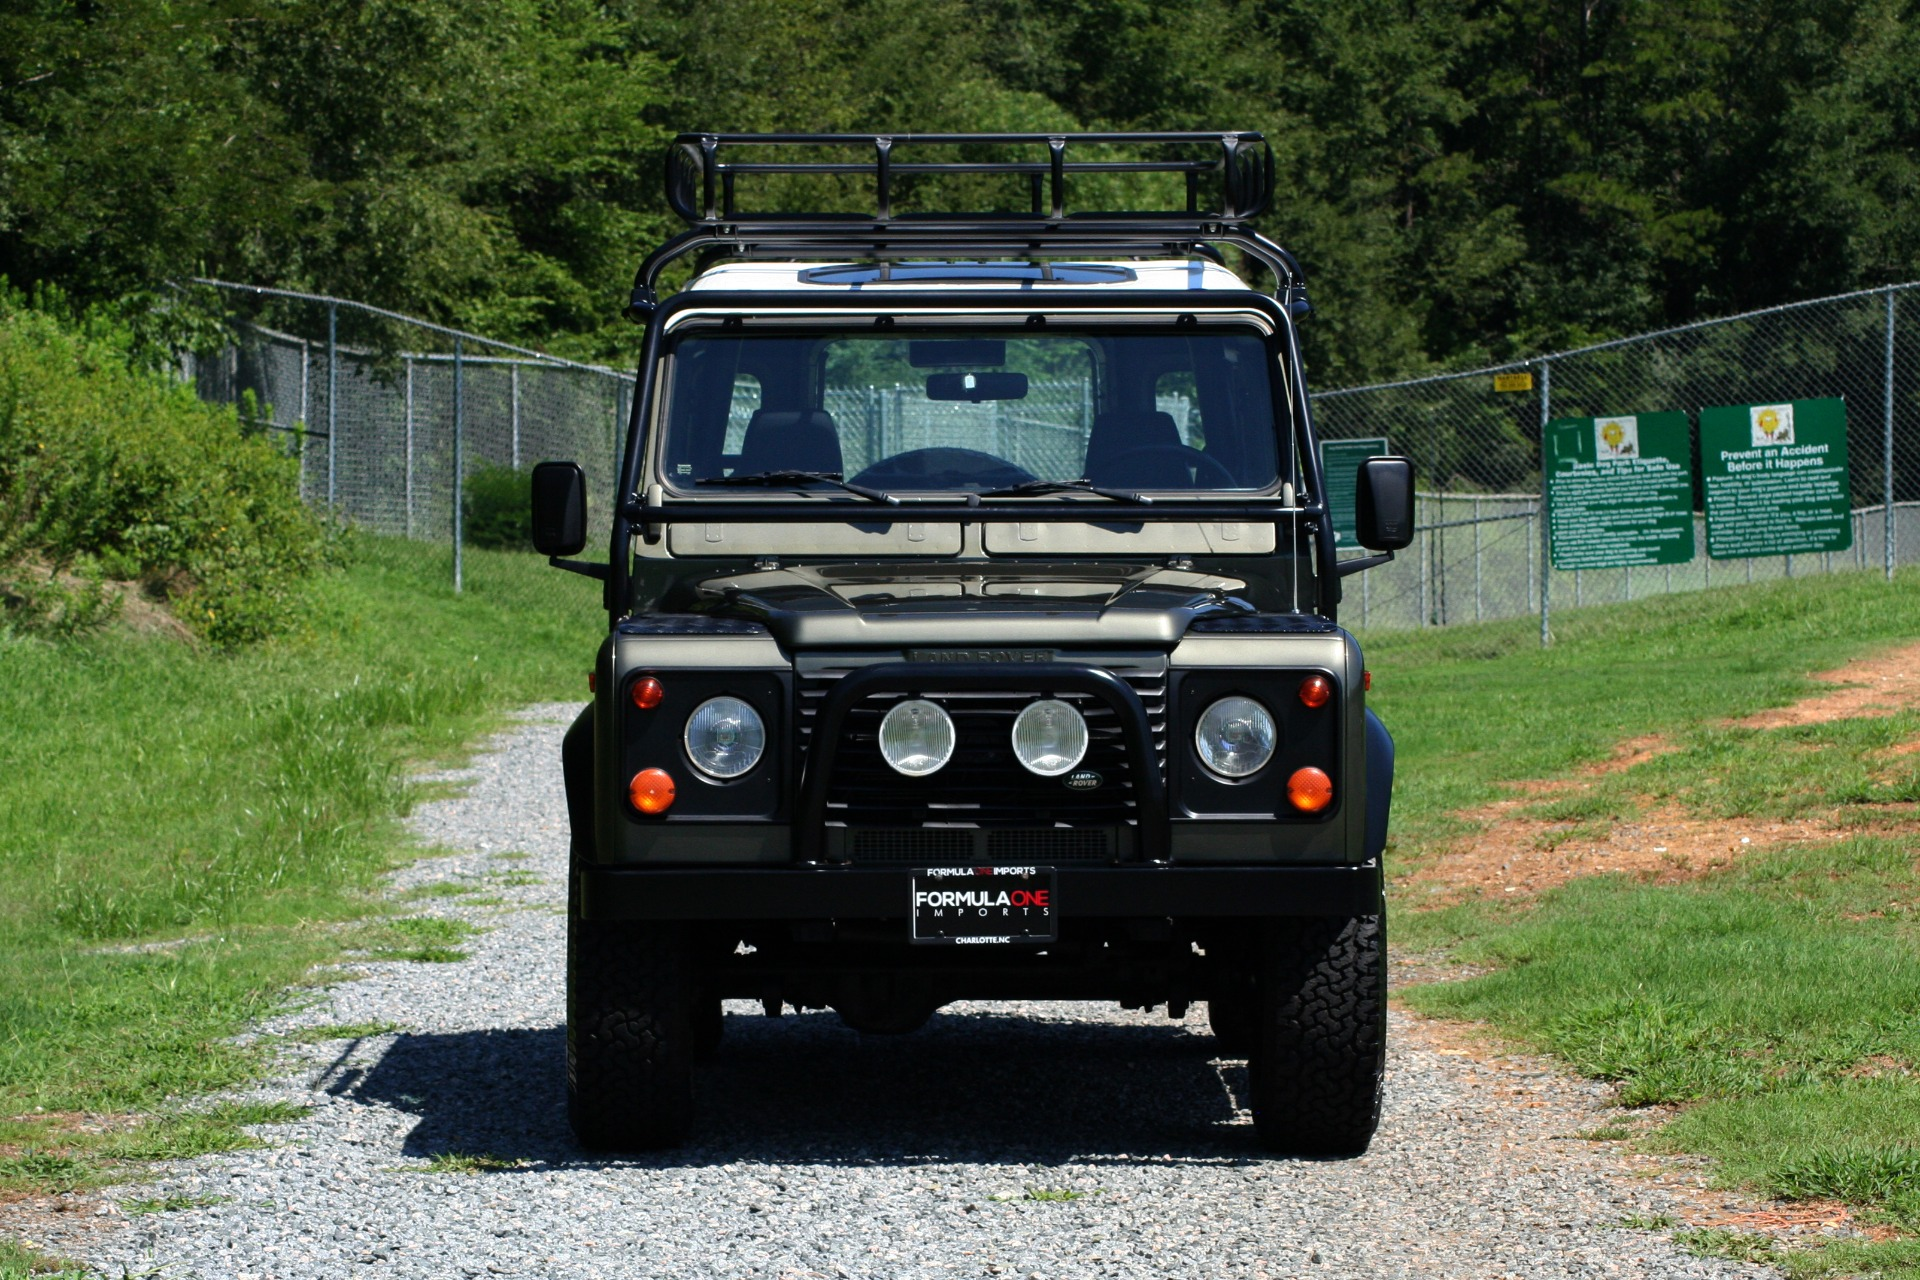 Used 1997 Land Rover DEFENDER 90 LIMITED EDITION / HARD-TOP / 4WD / FULLY RESTORED / LOW MILES for sale $119,000 at Formula Imports in Charlotte NC 28227 14